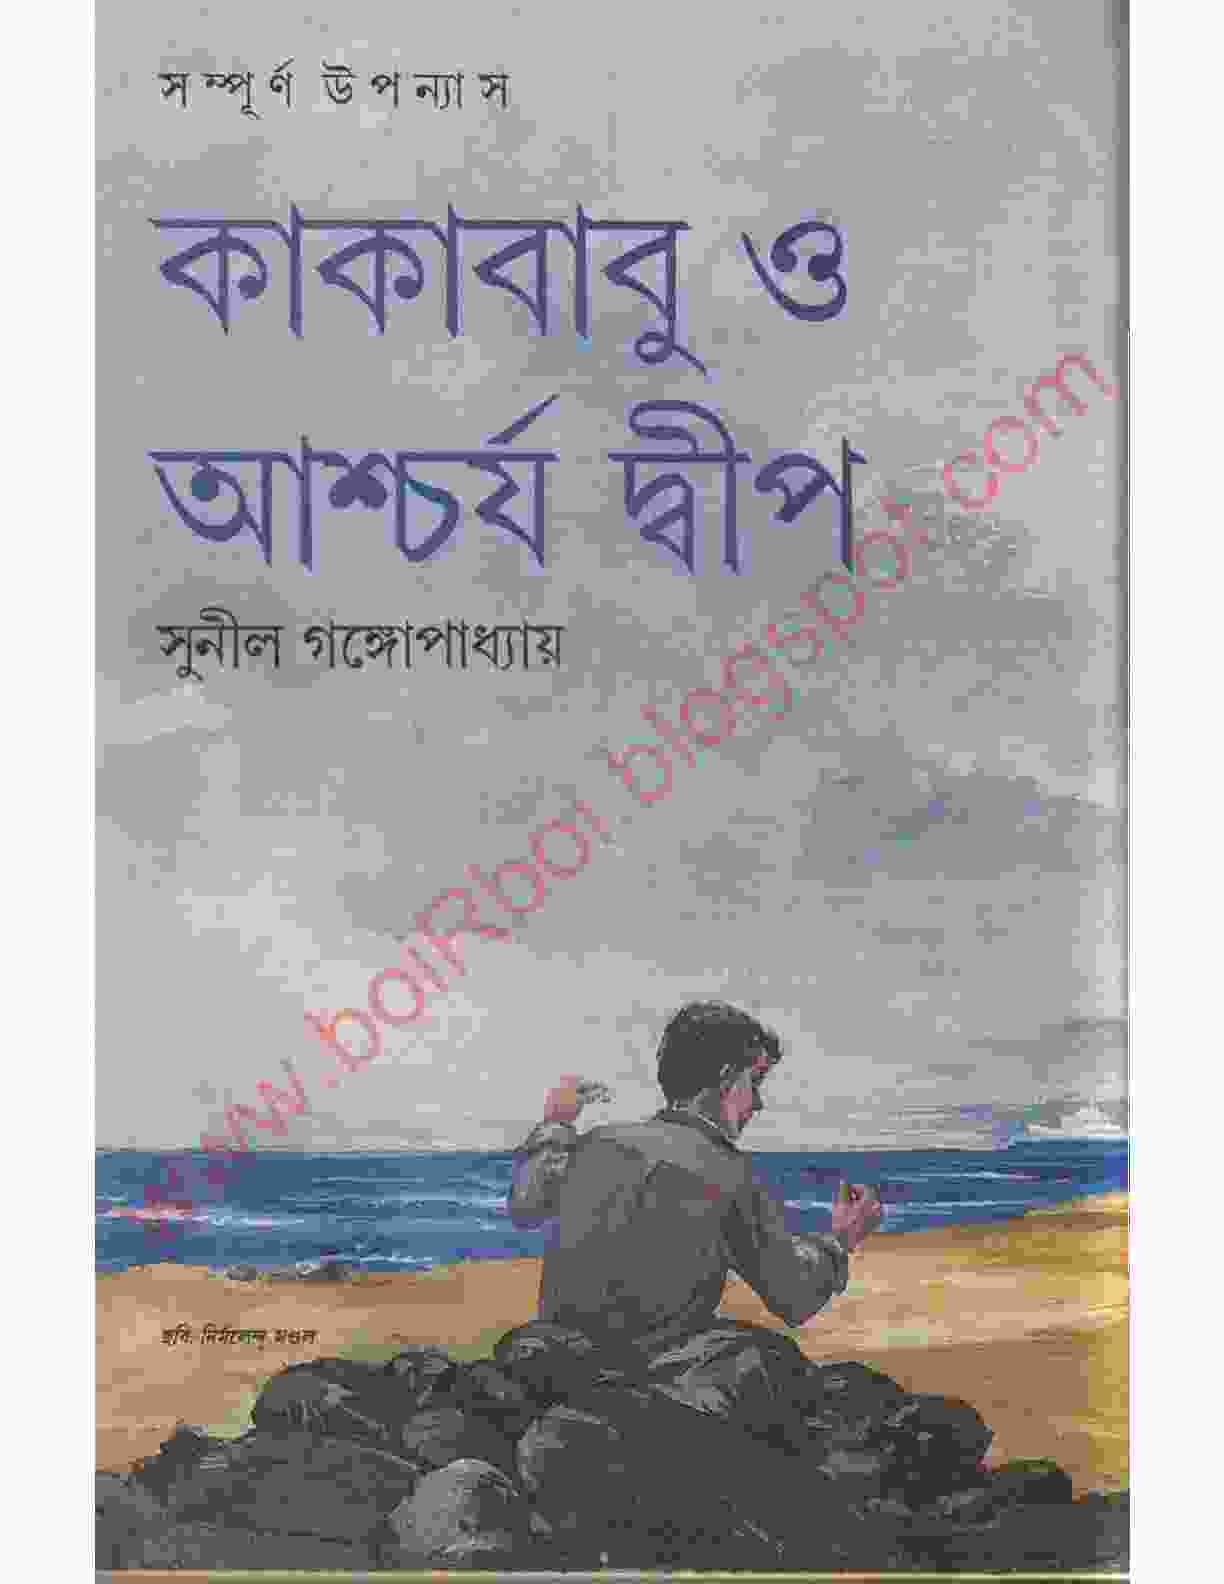 Bangla recipe book pdf free download delicious and healthy the other bangla recipe books of siddika kabir are available with her own secret tricks to be added while the process of food making is on which she has forumfinder Gallery